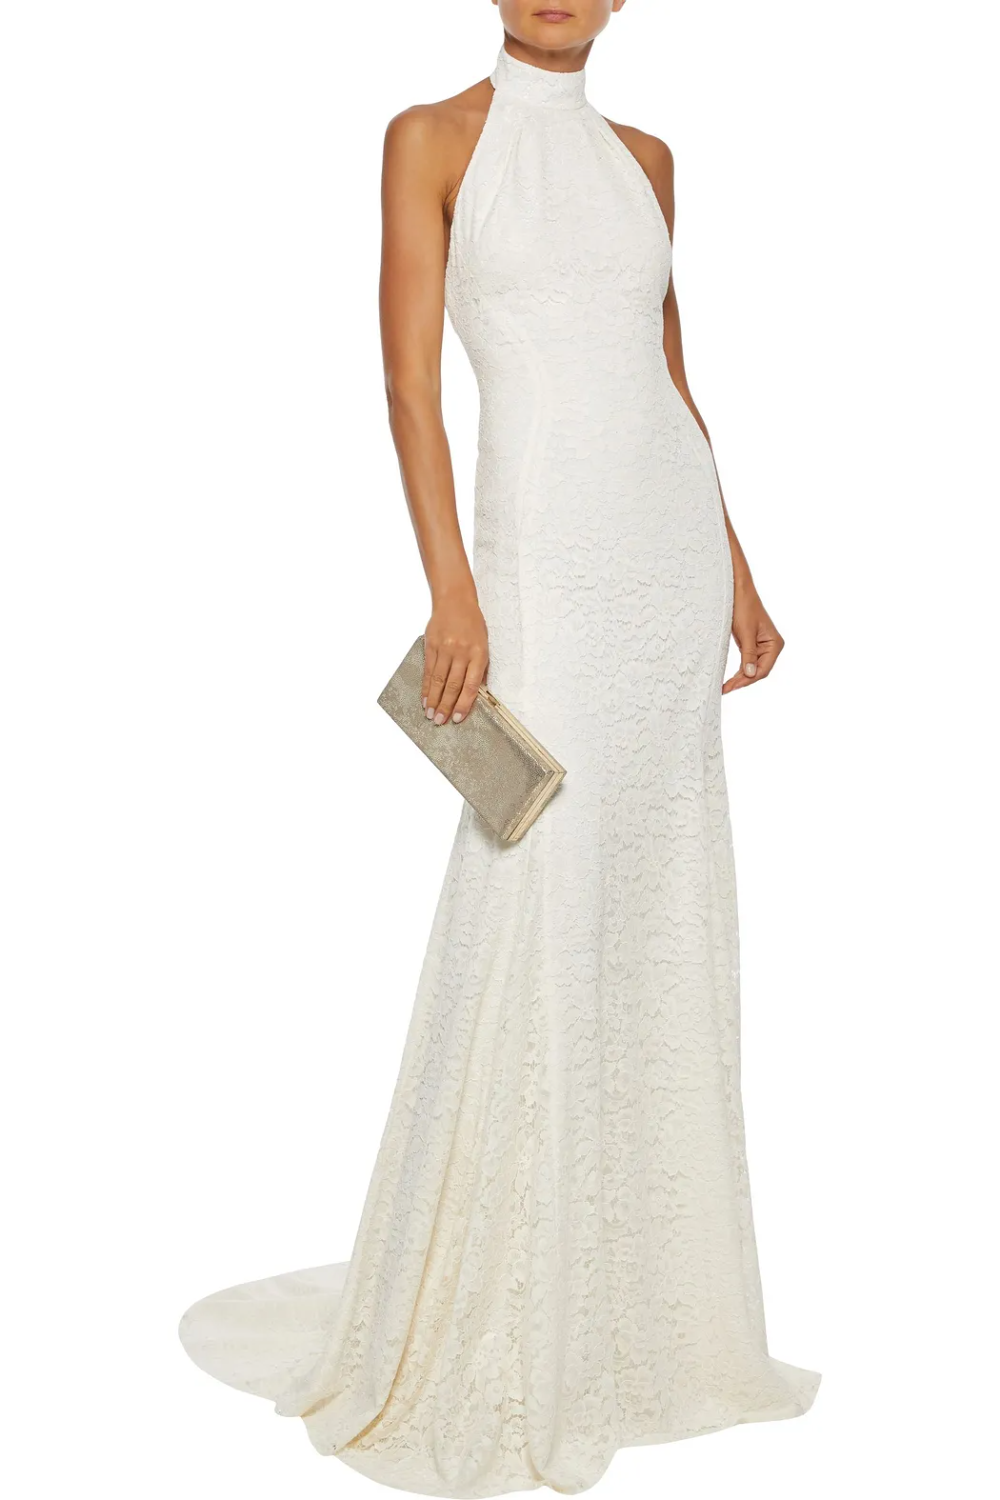 Ivory Willow Corded Lace Halterneck Bridal Gown Sale Up To 70 Off The Outnet Stella Mccartney Corded Lace Fashion Skirt Shopping [ 1500 x 1000 Pixel ]